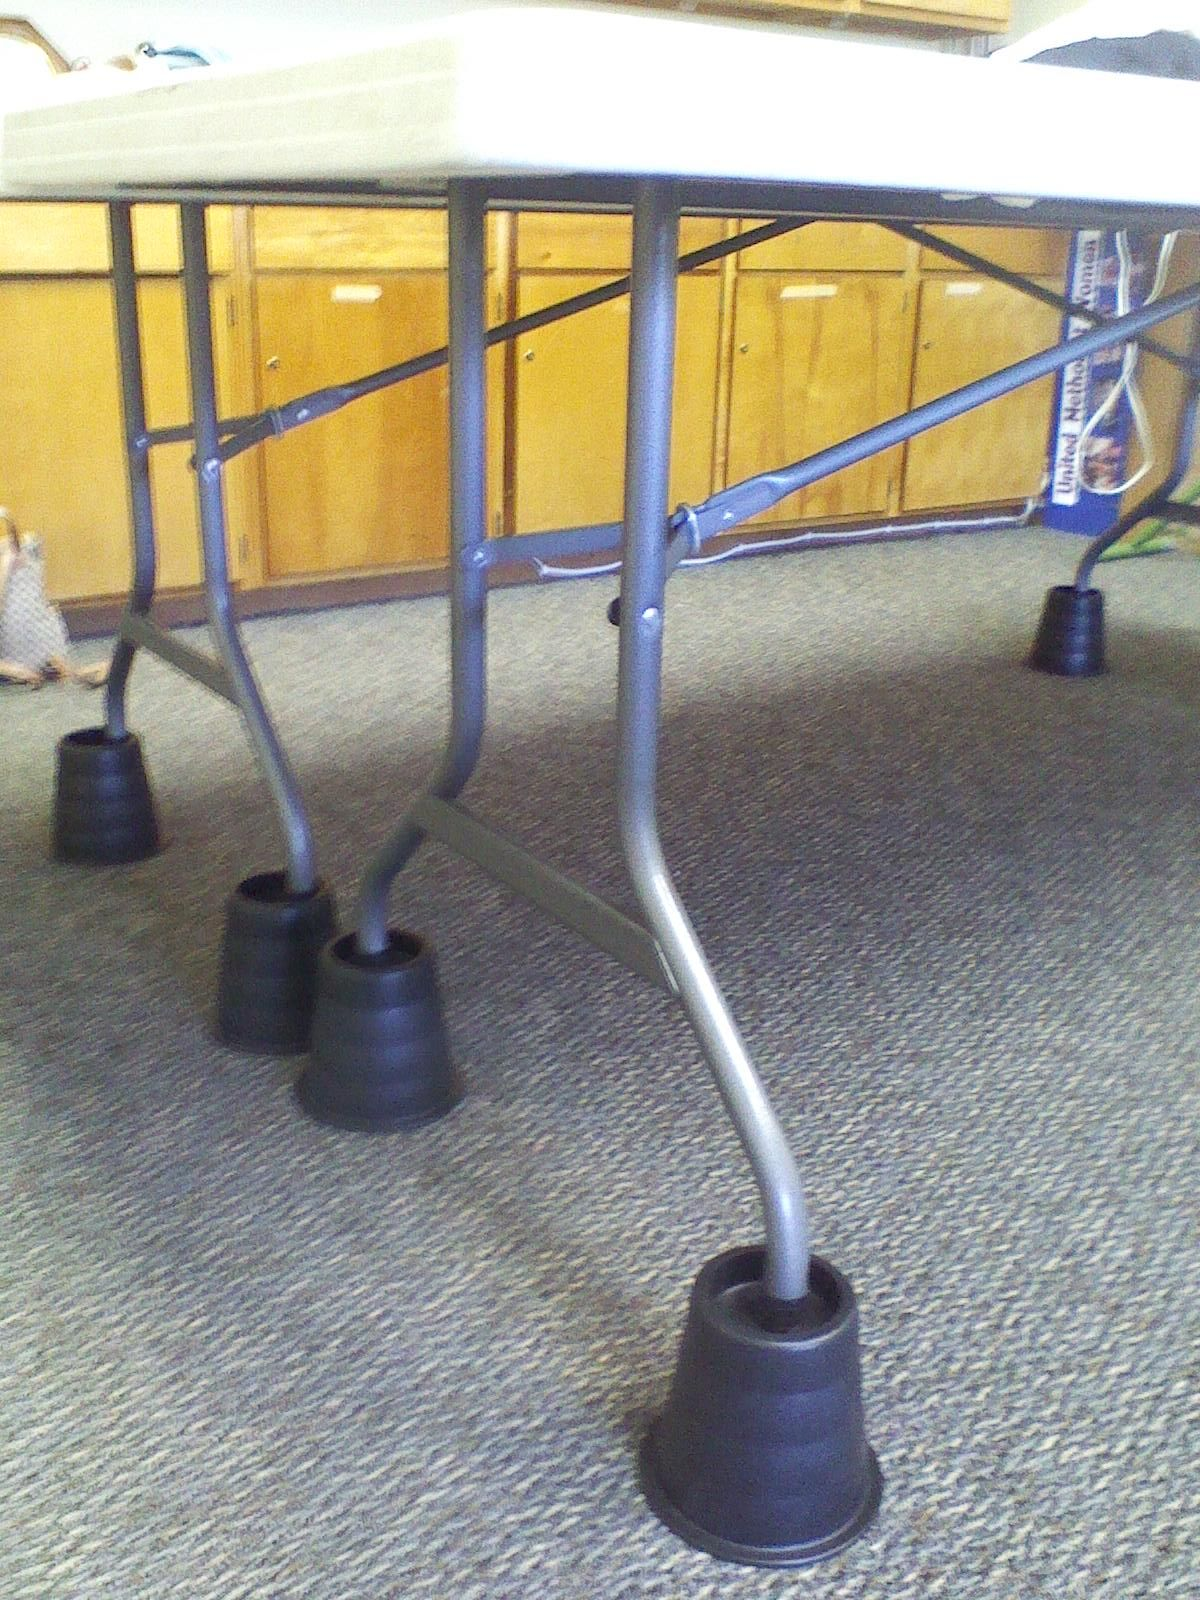 Superior Use Bed Risers To Raise The Height Of Working Table To Make It Easier On  Your